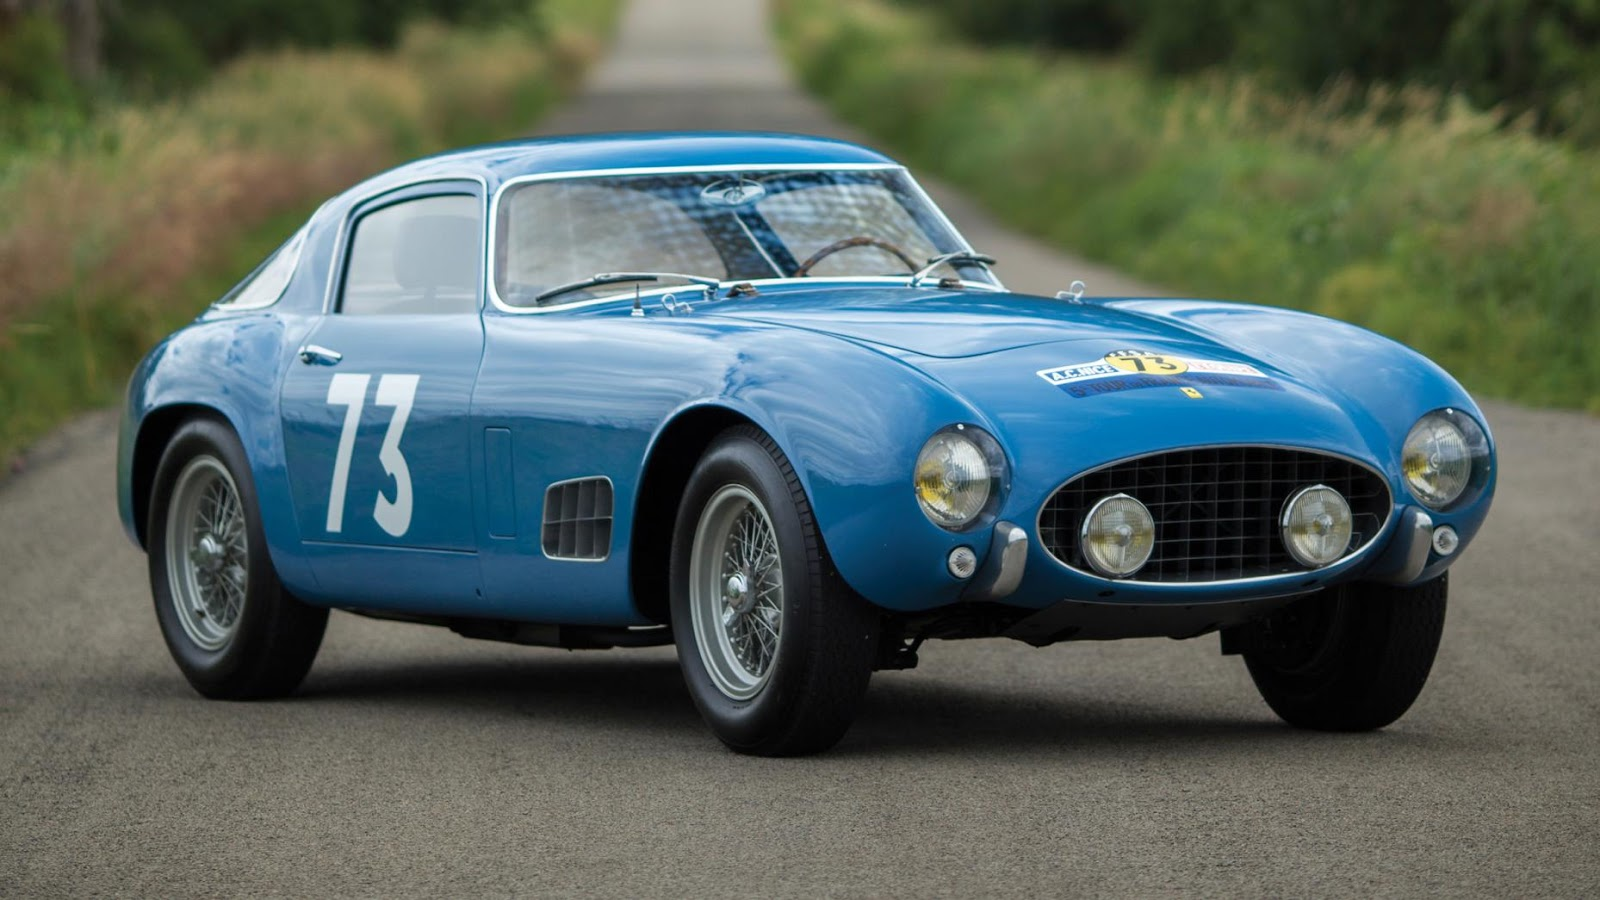 $13,200,000 – 1956 Ferrari 250 GT LWB Berlinetta 'Tour de France'